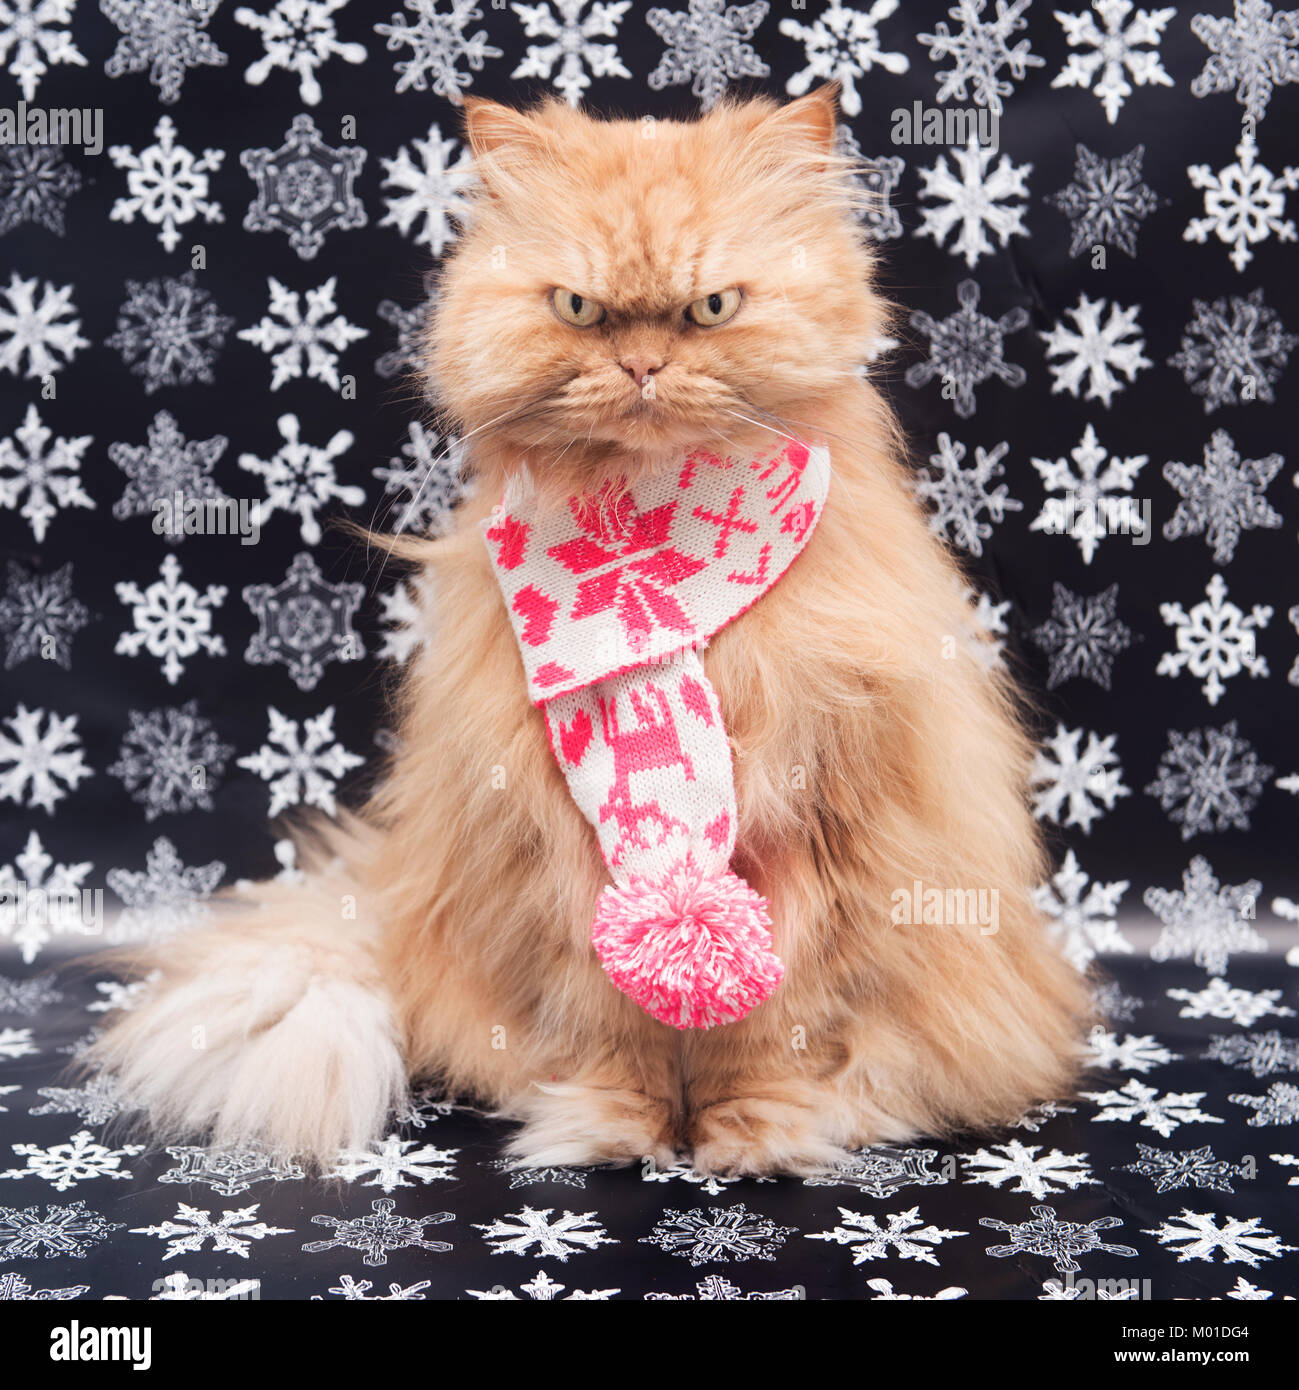 Orange Persian cat with knit scarf - Stock Image